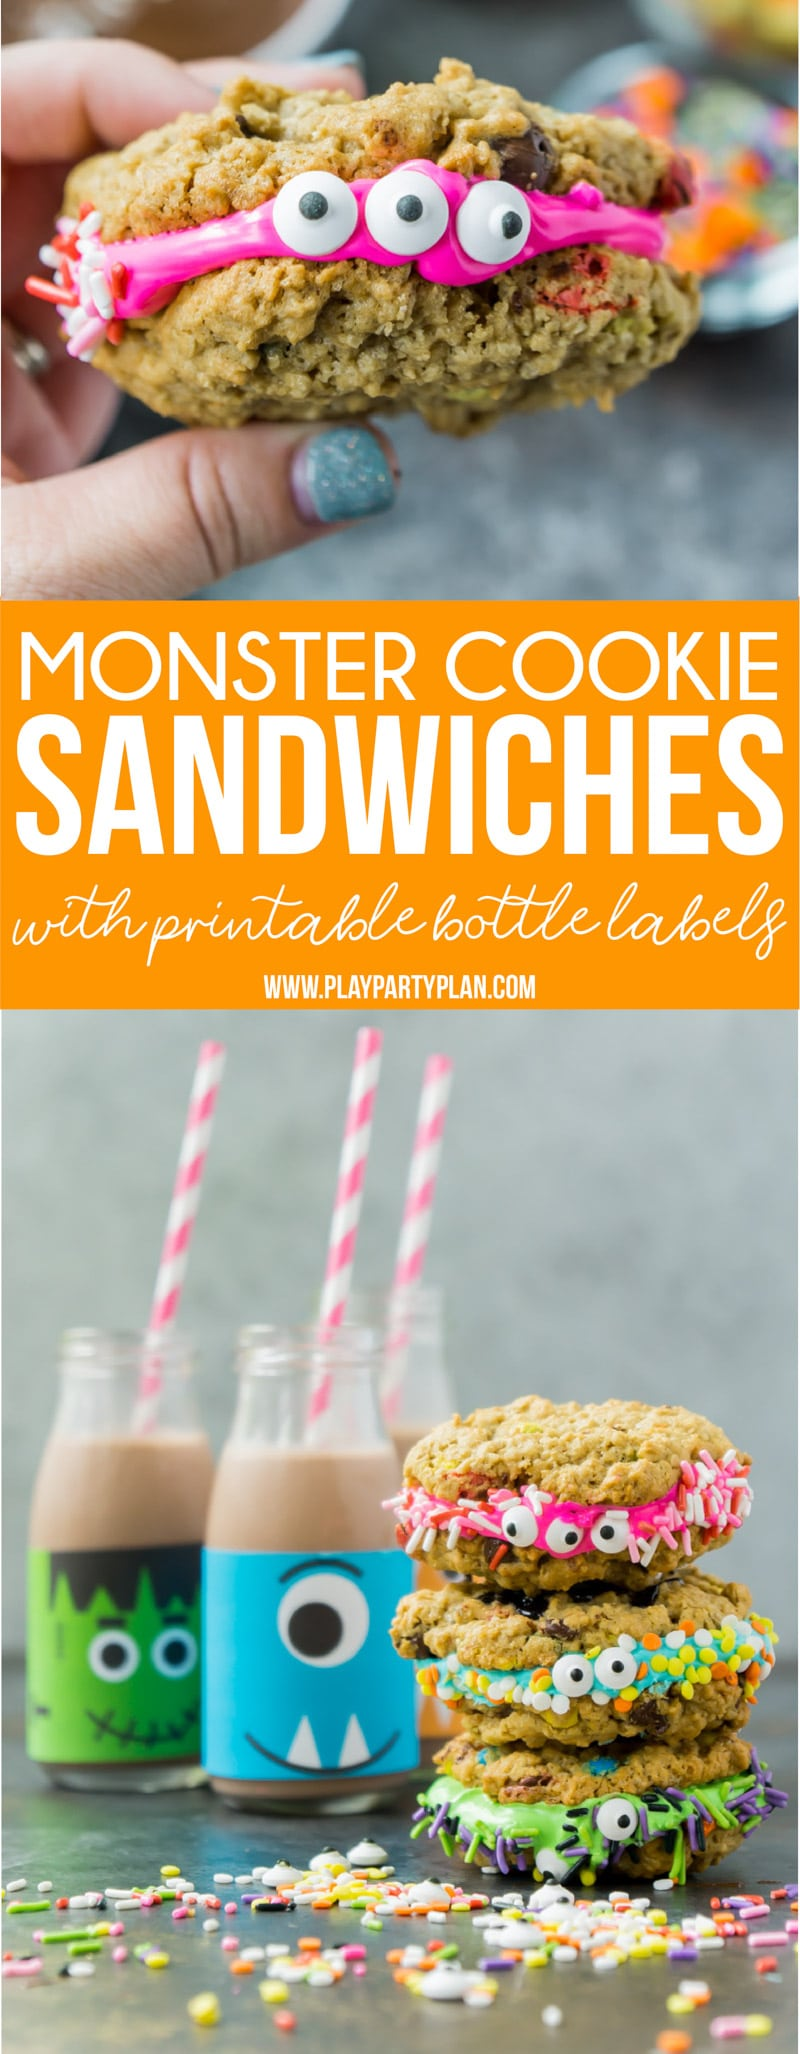 These monster cookie sandwiches are the perfect Halloween food ideas for kids! Make them for party day, as treats for after Halloween dinner, or to add to the Halloween desserts table! They're easy, delicious, and not so creepy!